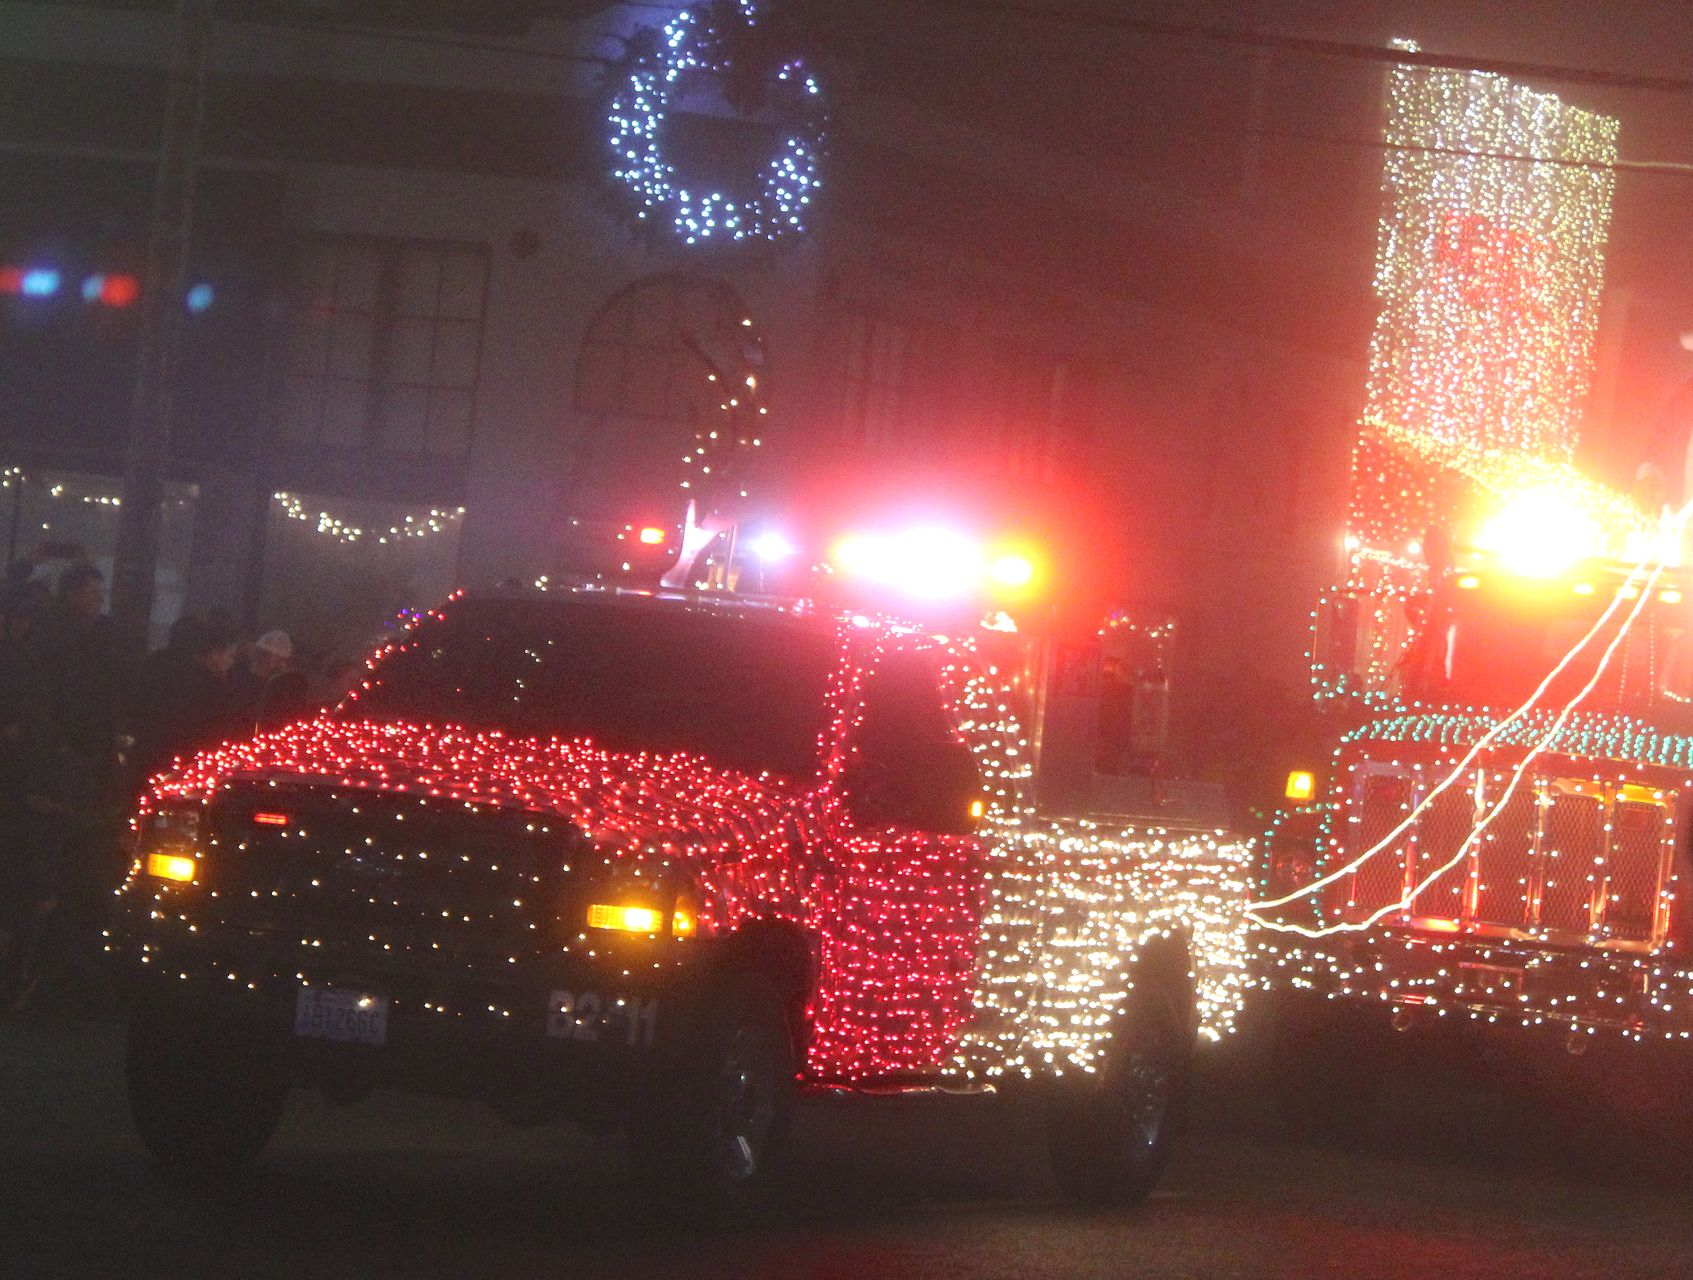 195 Montesano Festival of Lights December 14, 2019